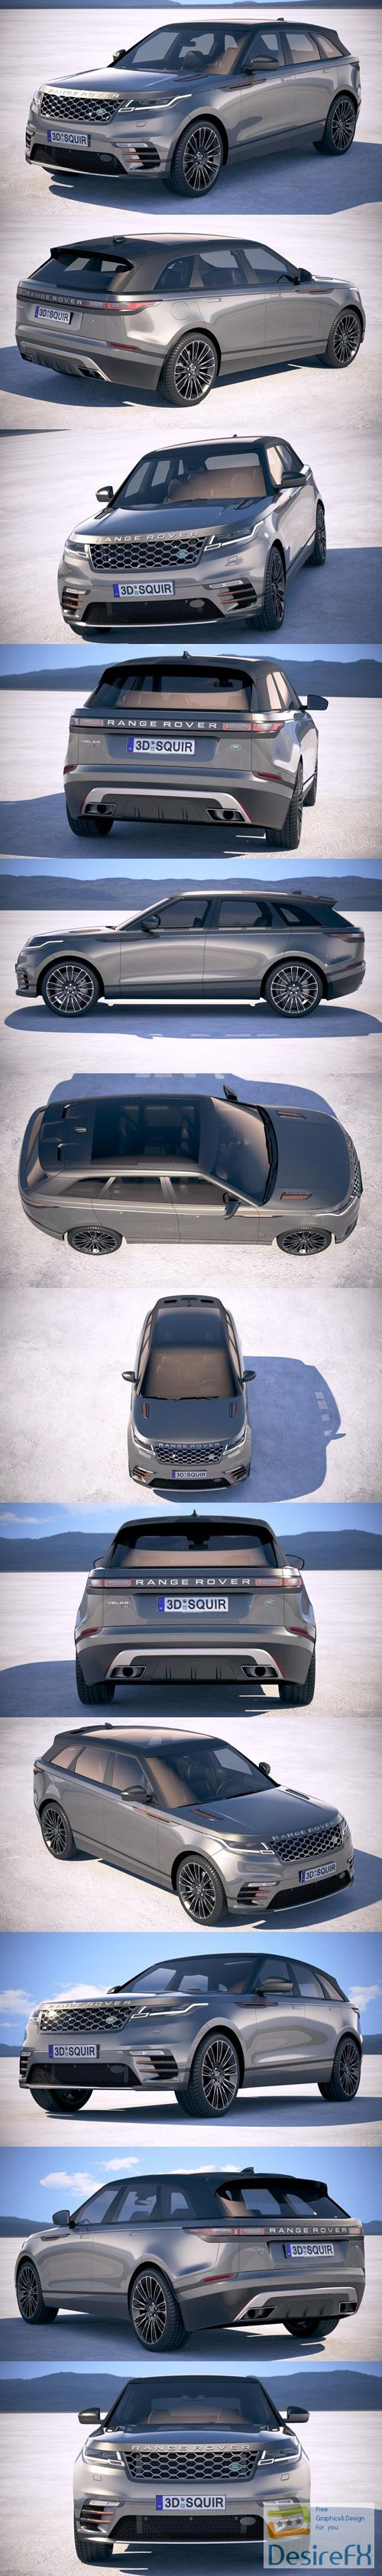 3d-models - Land Rover Range Rover Velar 2018 3D Model